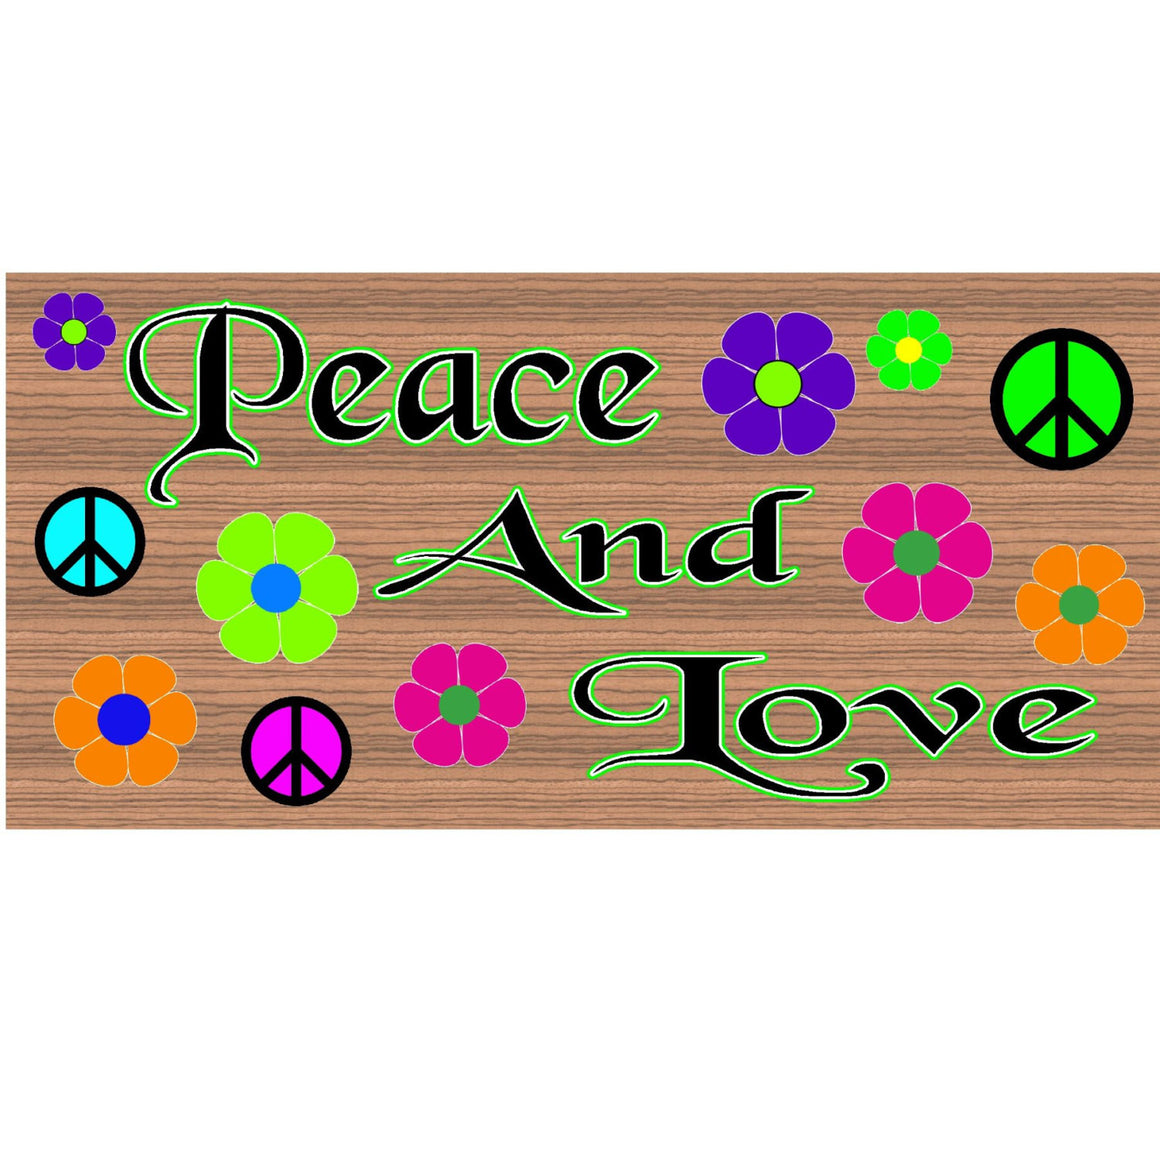 Hippie Wood Signs -Peace and Love- GS 994- Hippie Plaque